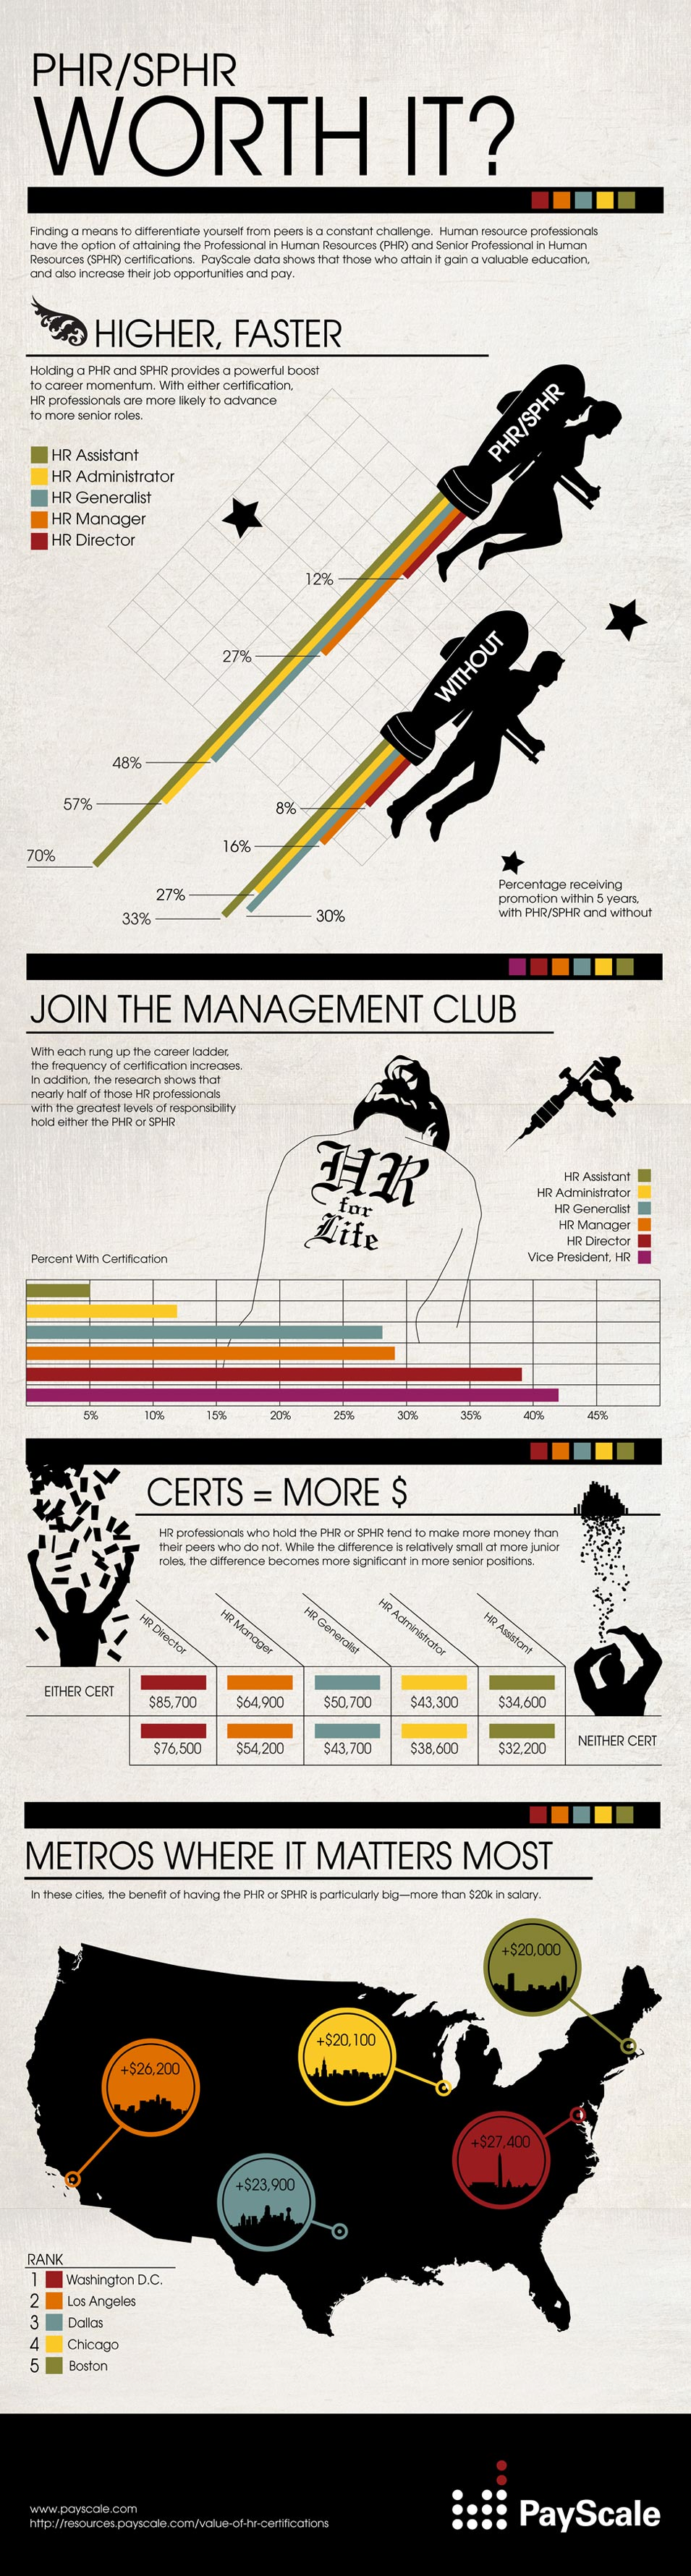 PayScale's 2012 Worth It Infographic